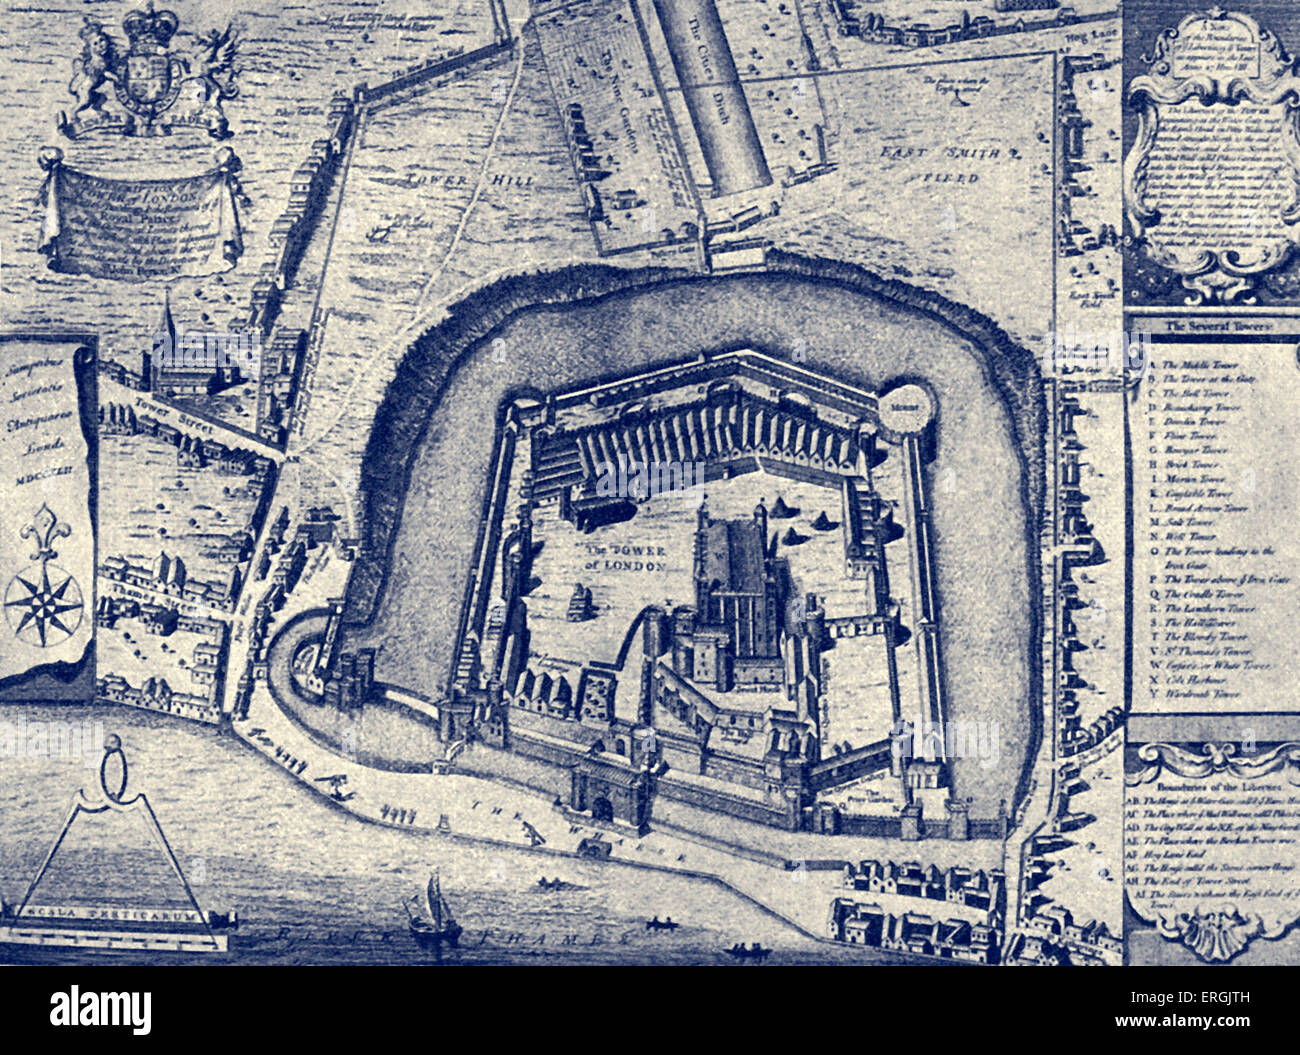 The Tower of London - from plan made in 1597. (Entitled: 'Vestuta Monumenta' ('Ancient monuments'). - Stock Image